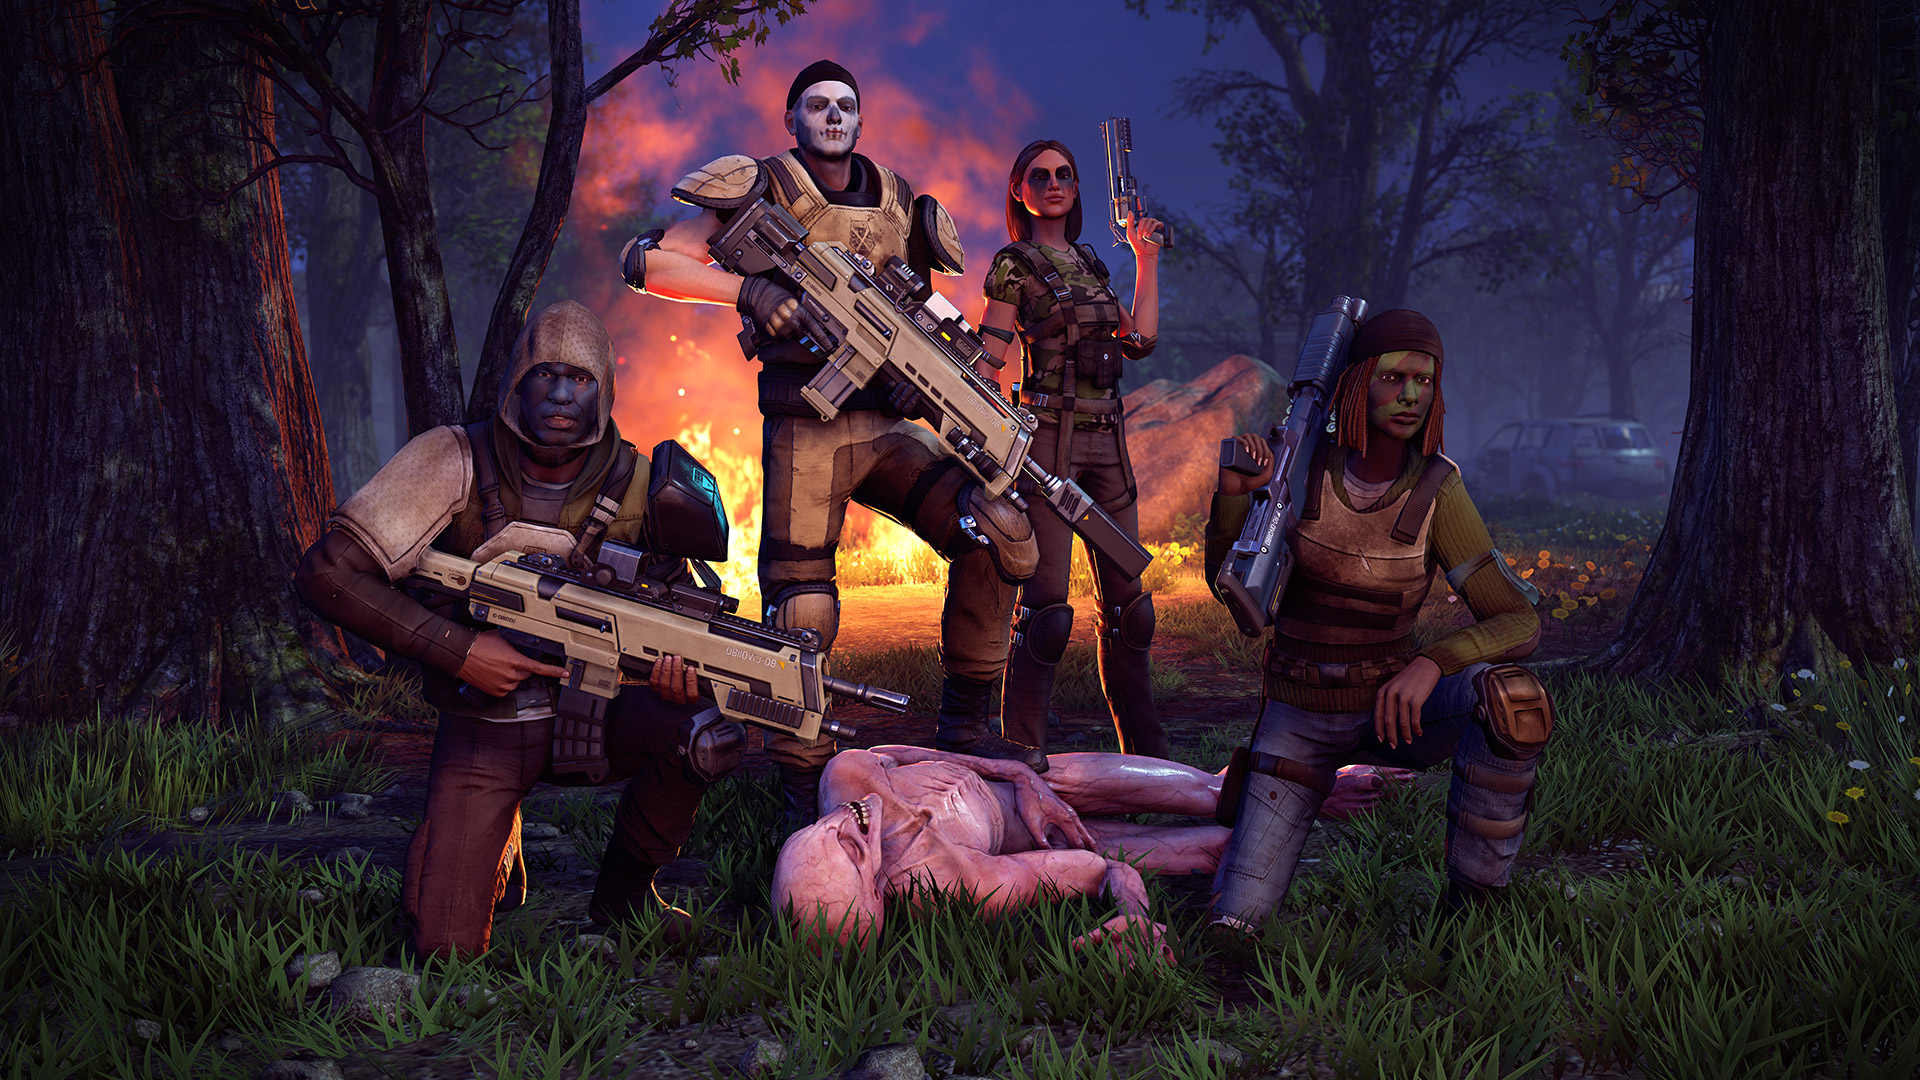 xcom news - xcom: enemy unknown is free-to-play on steam this weekend